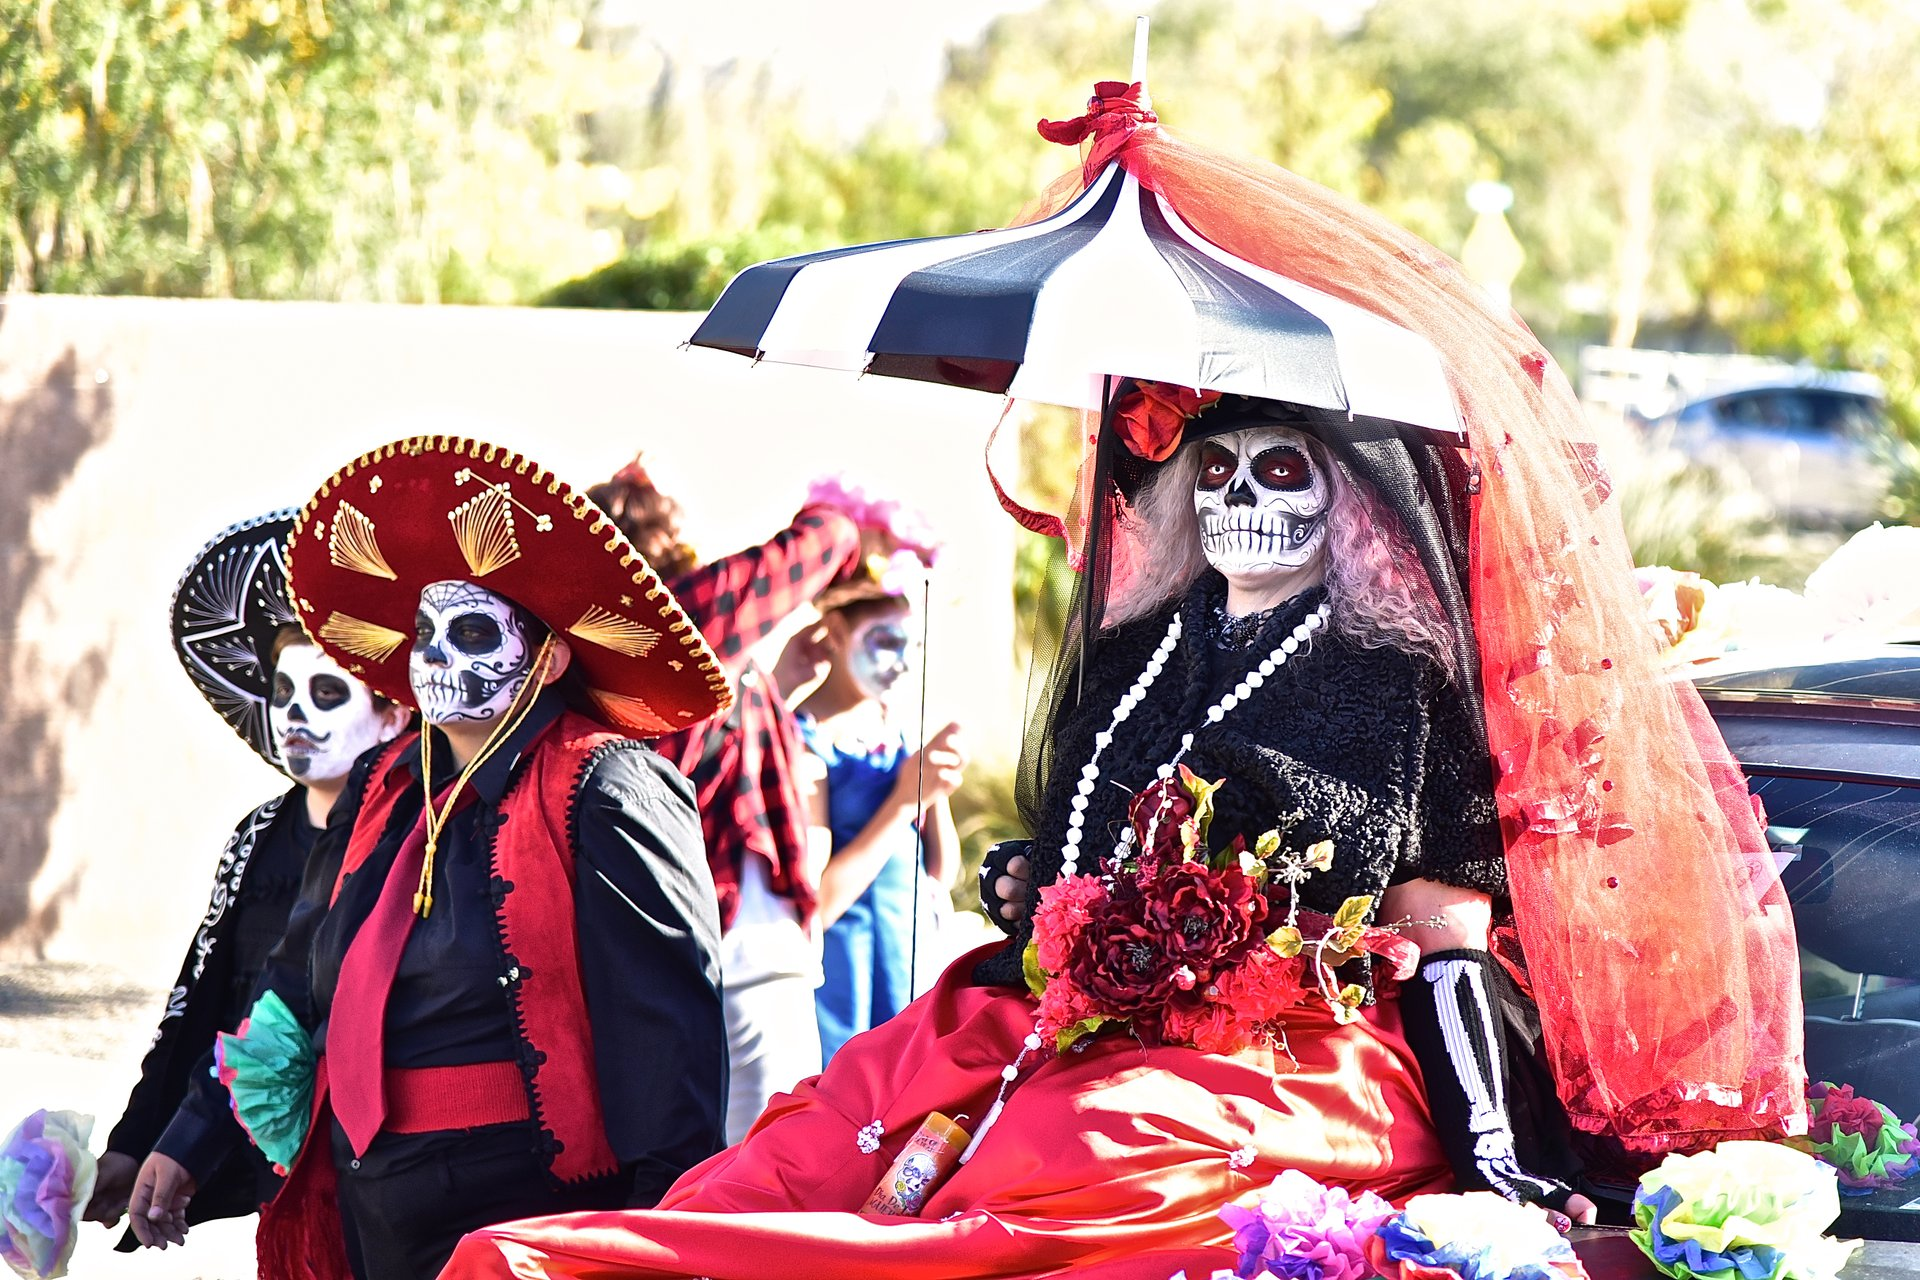 Best time for Día de los Muertos or Day of the Dead